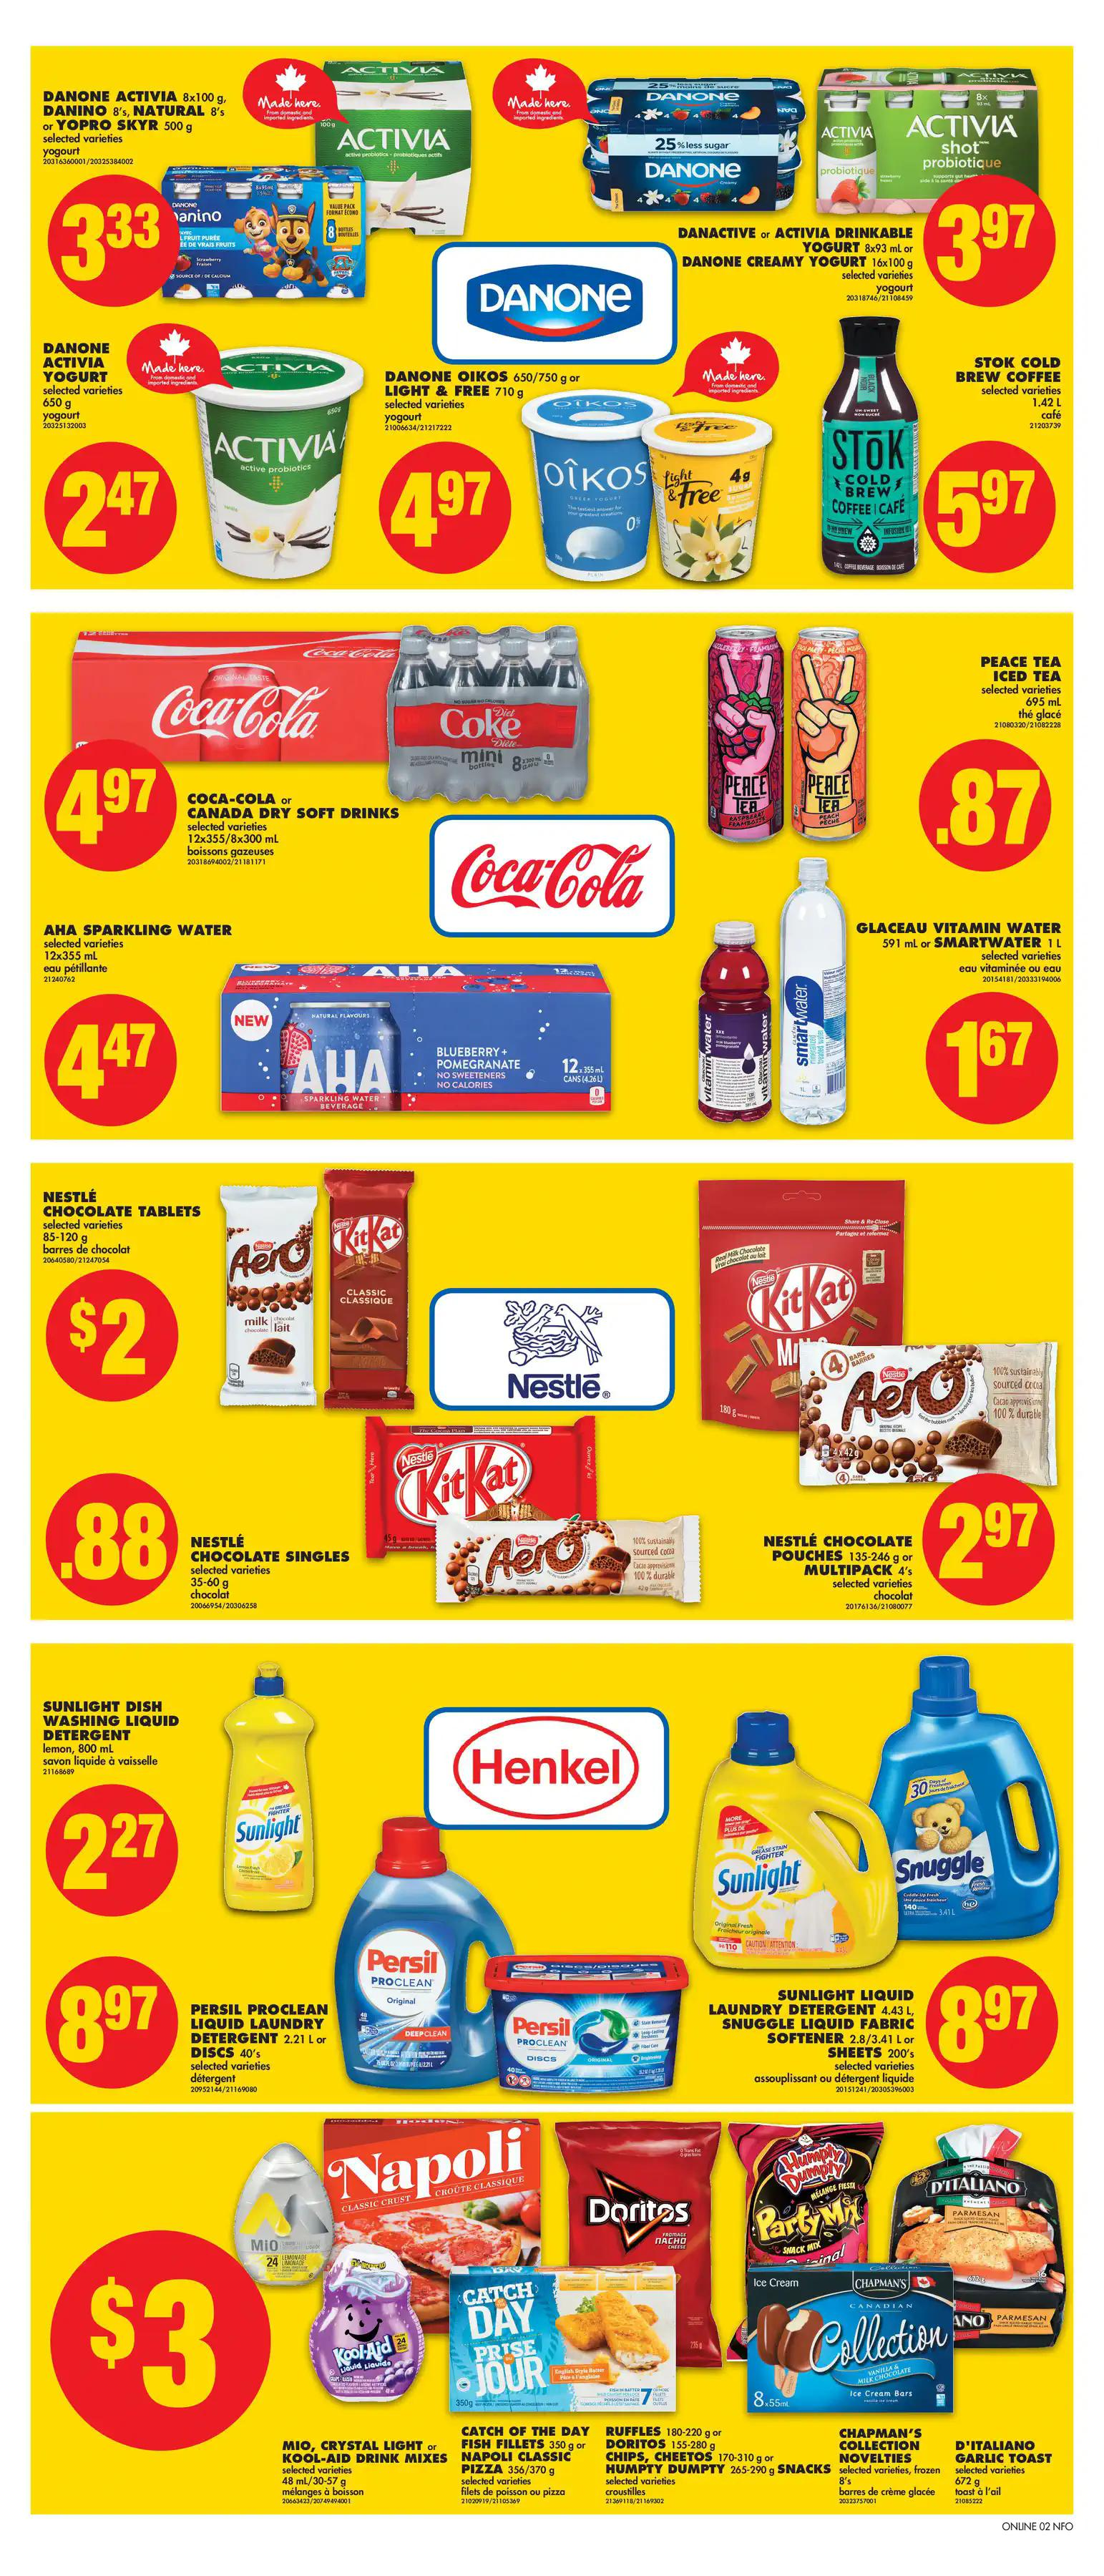 No Frills - Weekly Flyer Specials - Page 7